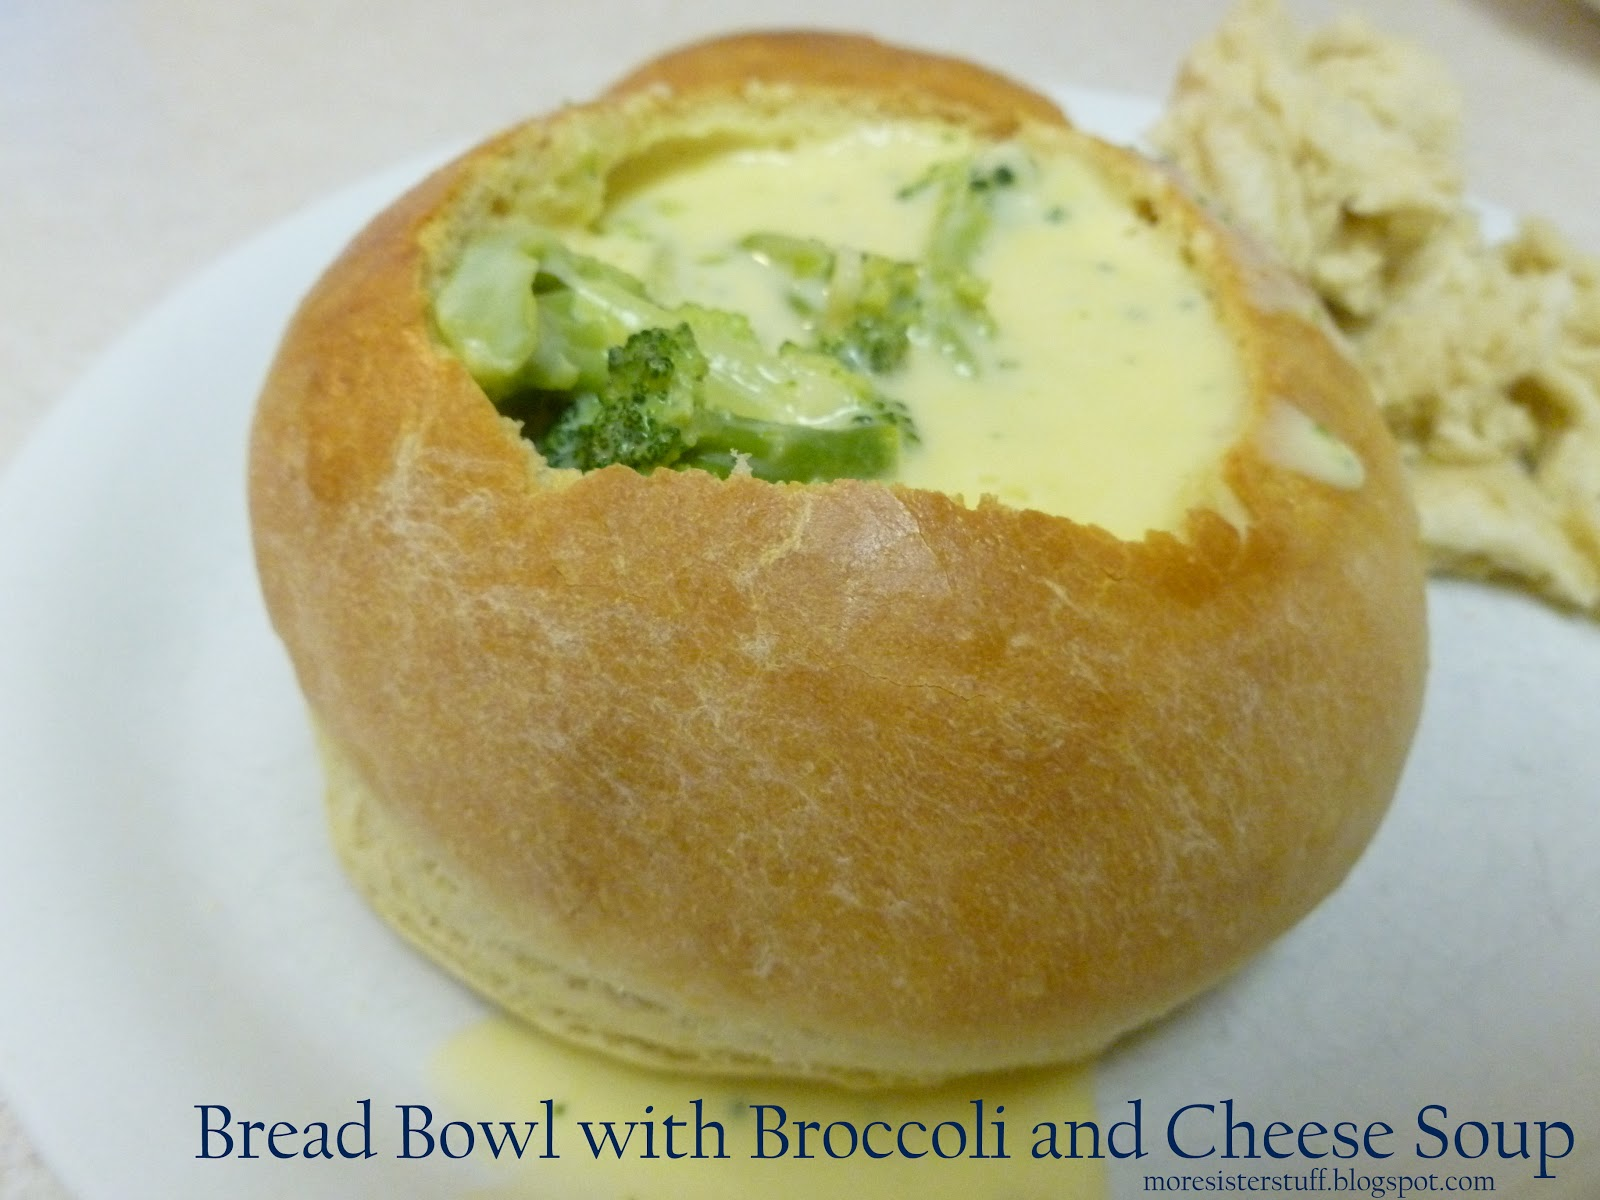 For serving, cut a large round out of the top of each bread bowl. Scoop out the center (save the center to dunk into soup!) and fill with soup. Cover and store leftover bread bowls at room temperature for a couple days or in the refrigerator for 1 week.